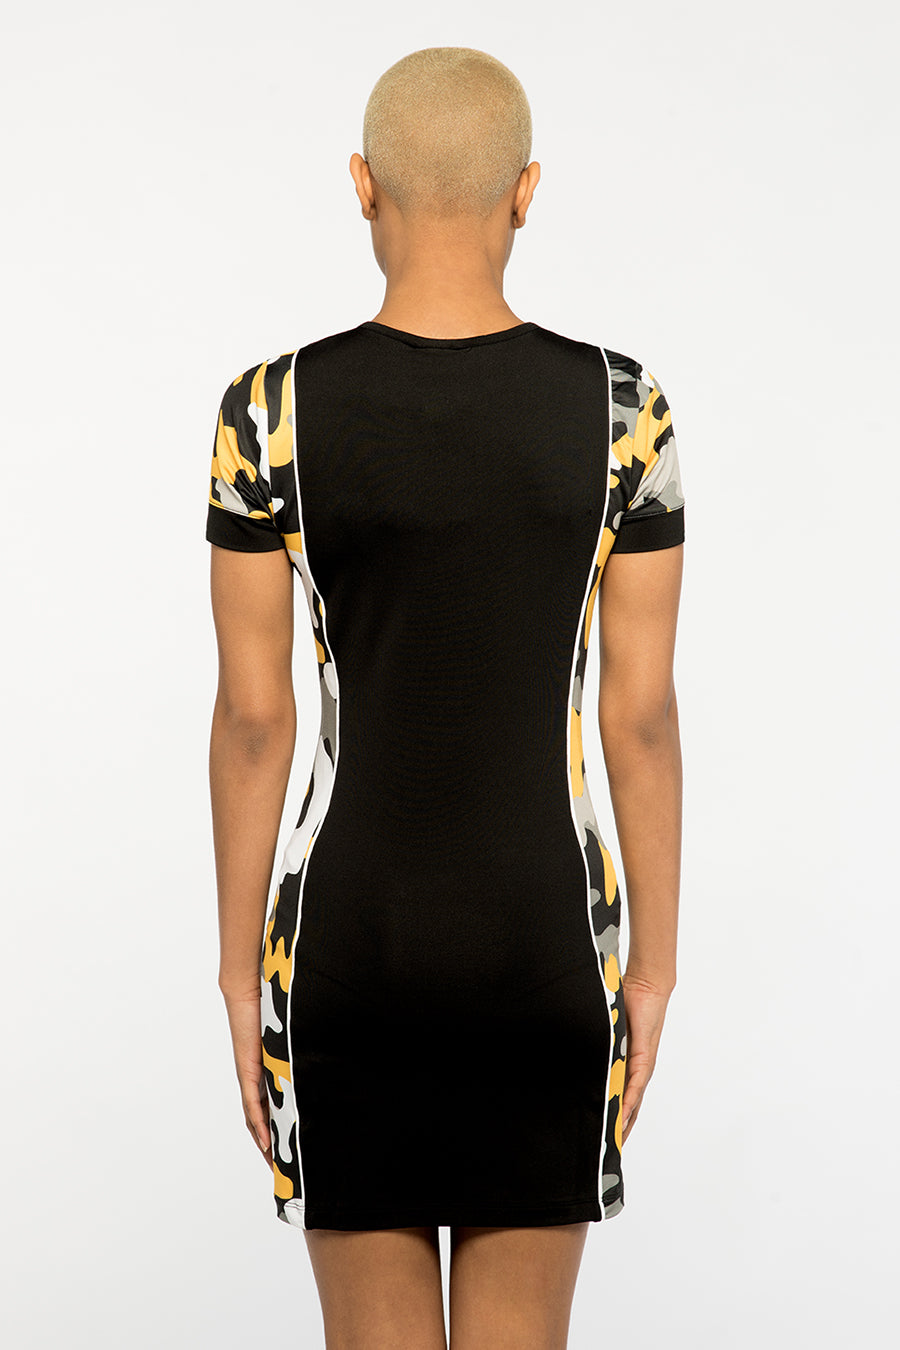 new_future_london_midi_dress_camo_yellow_2-1.jpg